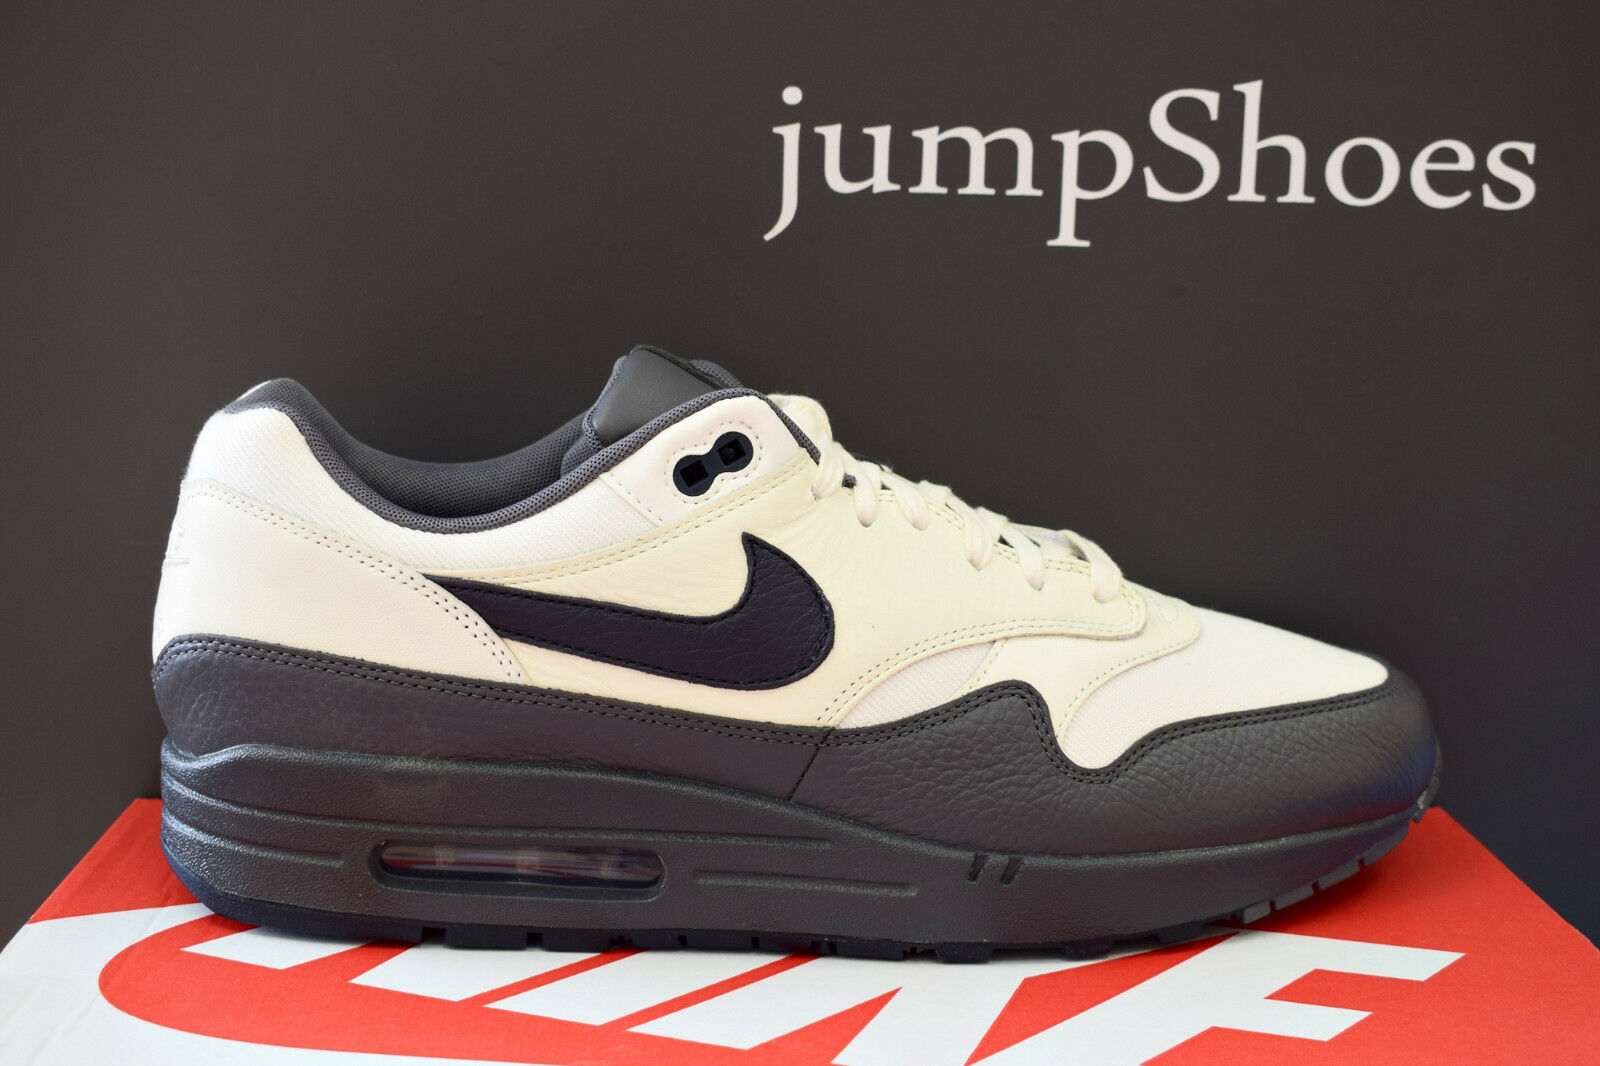 Nike Air Max 1 Premium lifestyle sneakers sail dark obsidian NEW 875844-100 Cheap and beautiful fashion